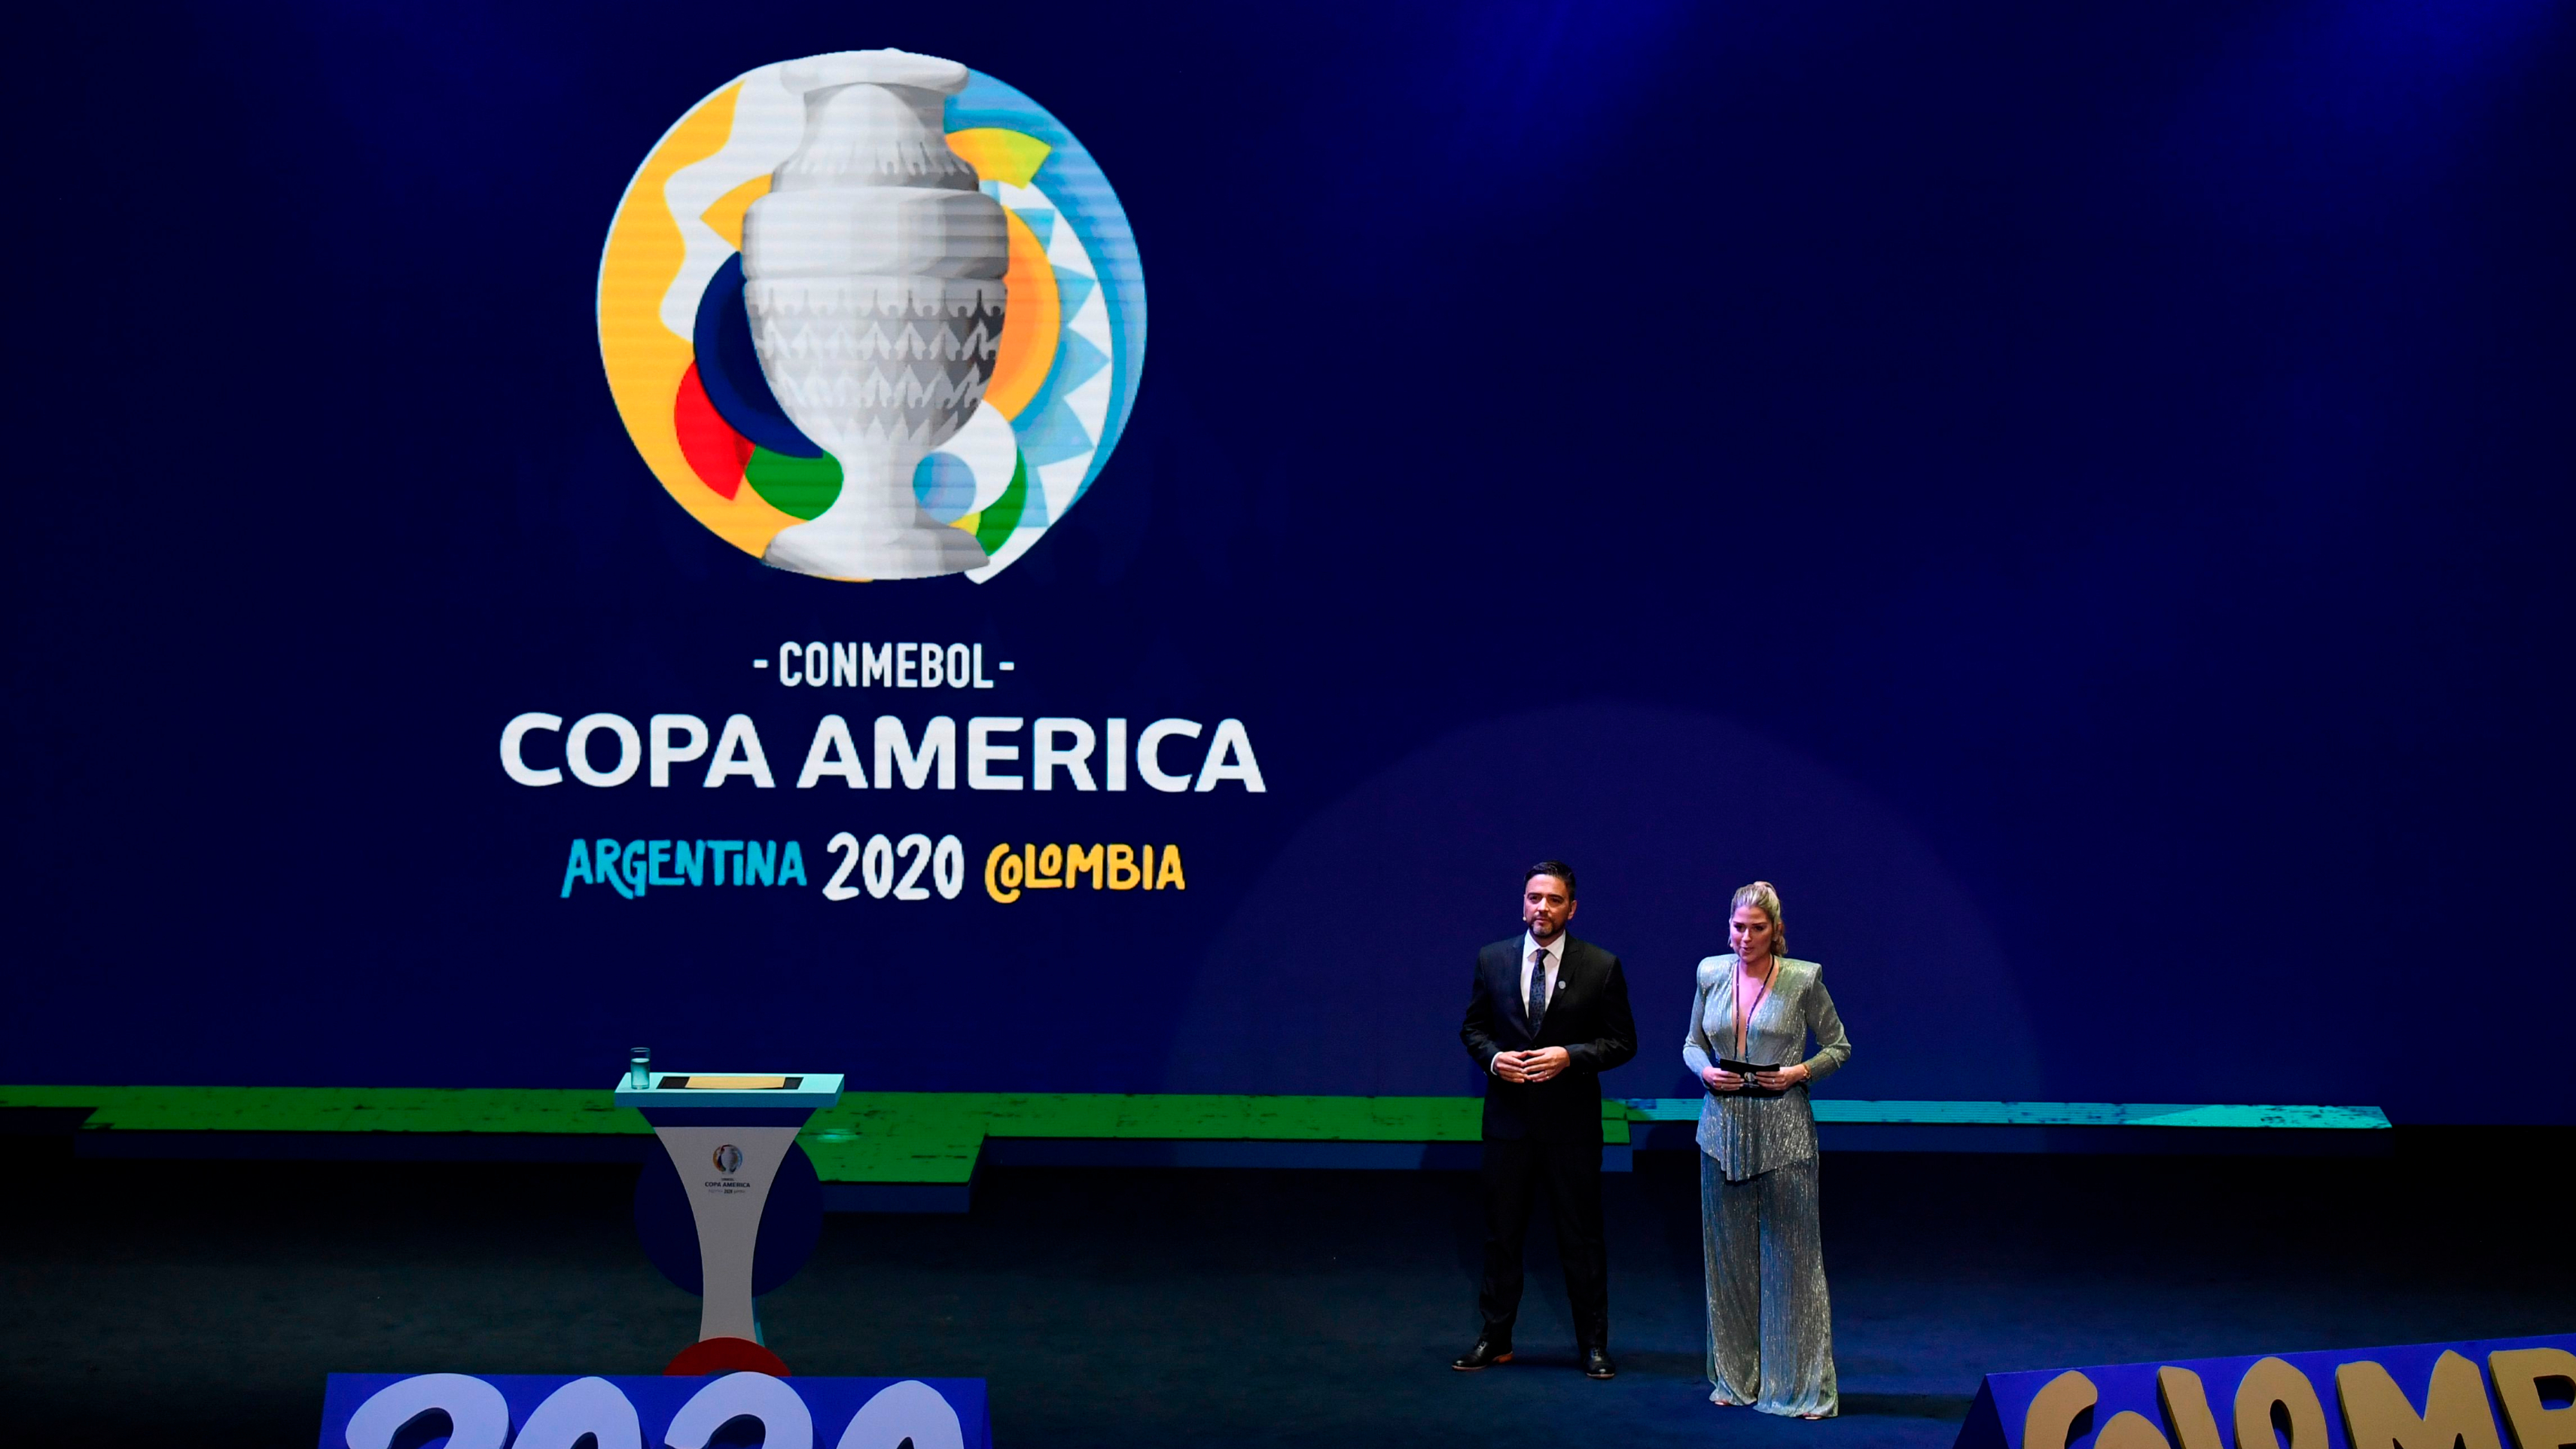 Qatar placed in Group B at Copa America 2020